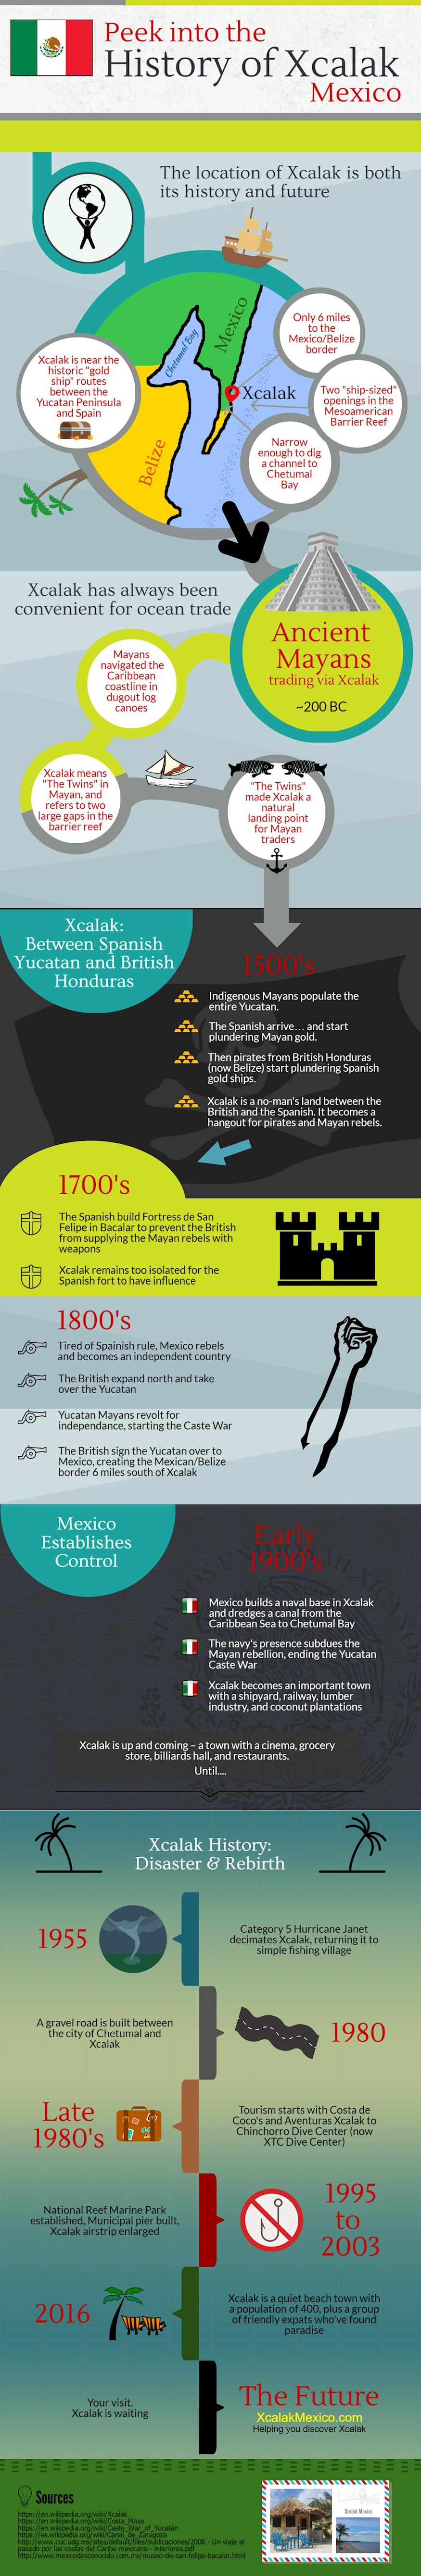 History of Xcalak infographic